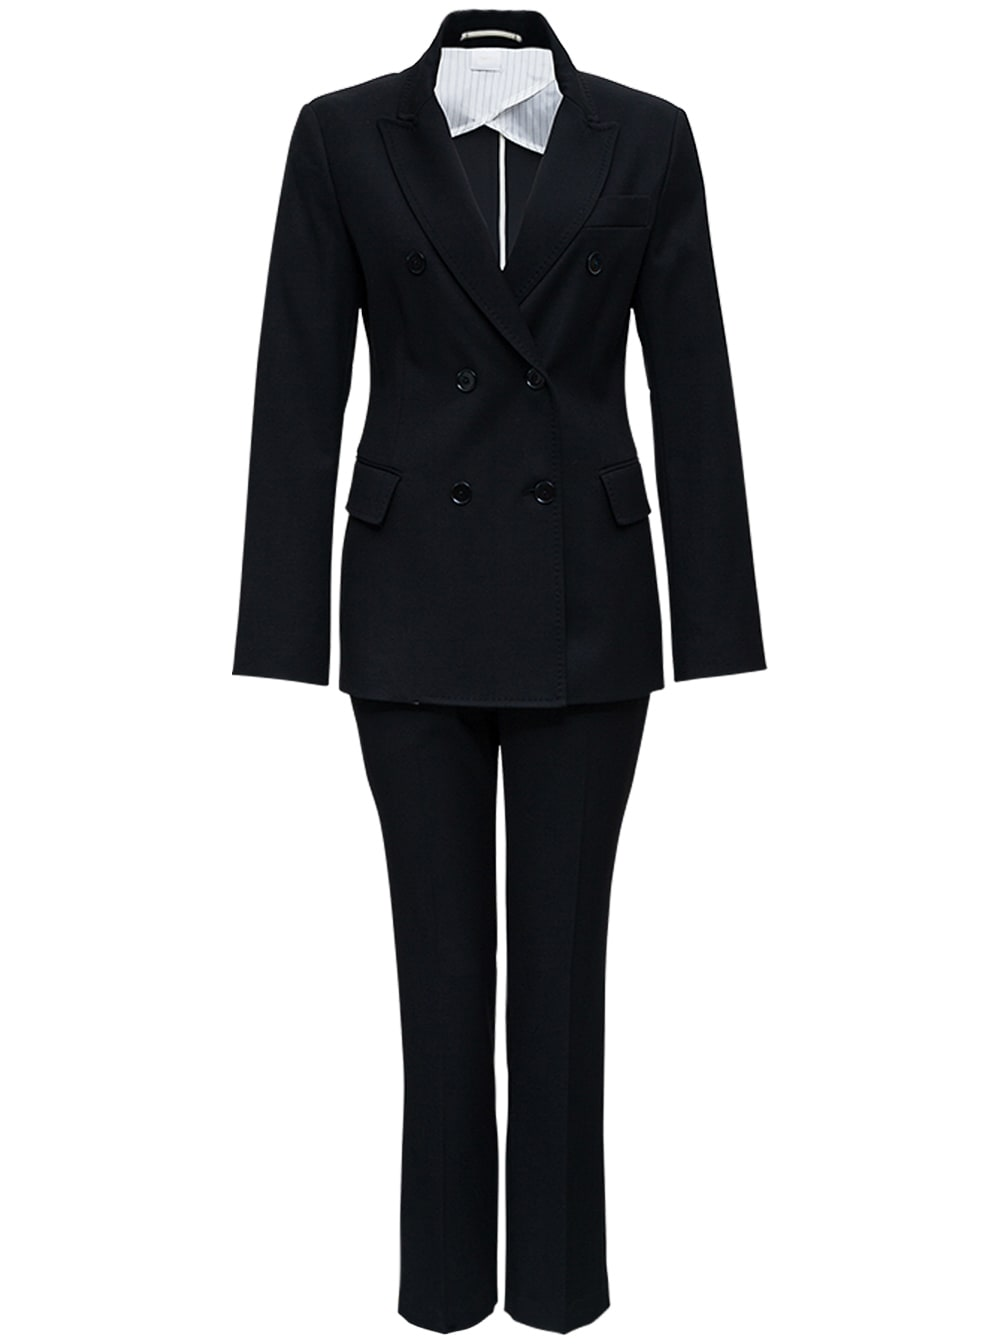 Black Double-breasted Tailored Suit